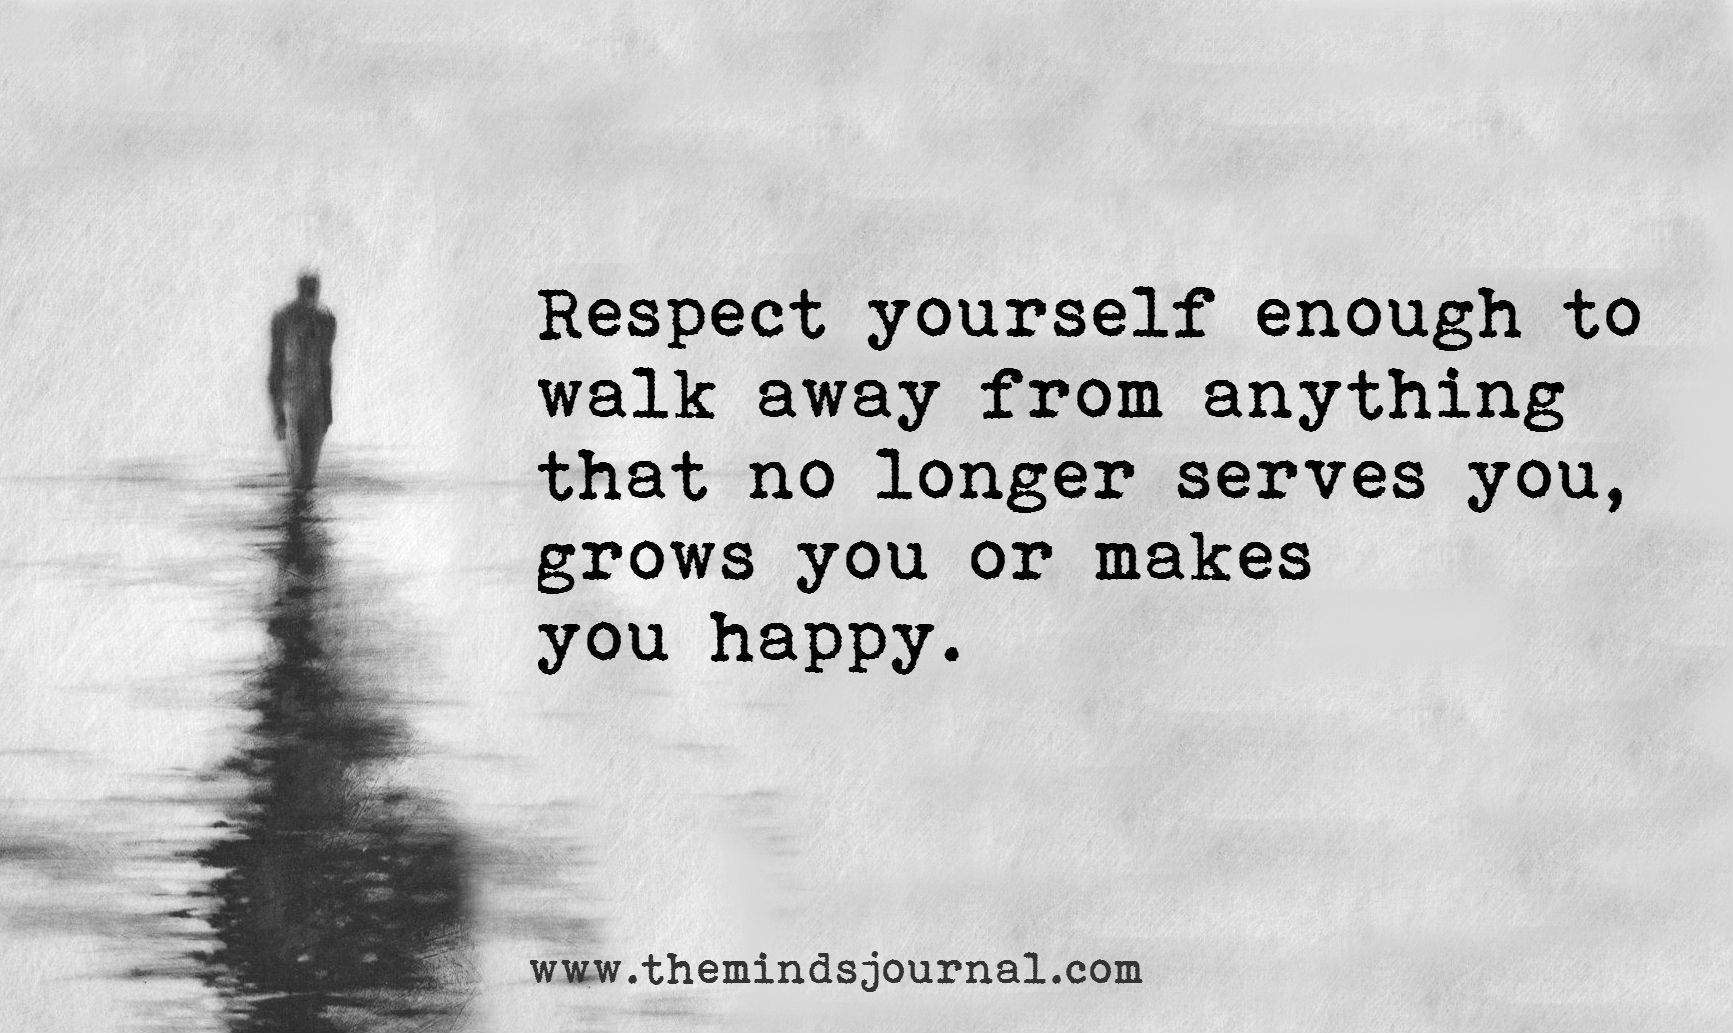 Respect yourself enough to walk away from anything that no longer serves you,grows you or makes you happy. Do you agree ?